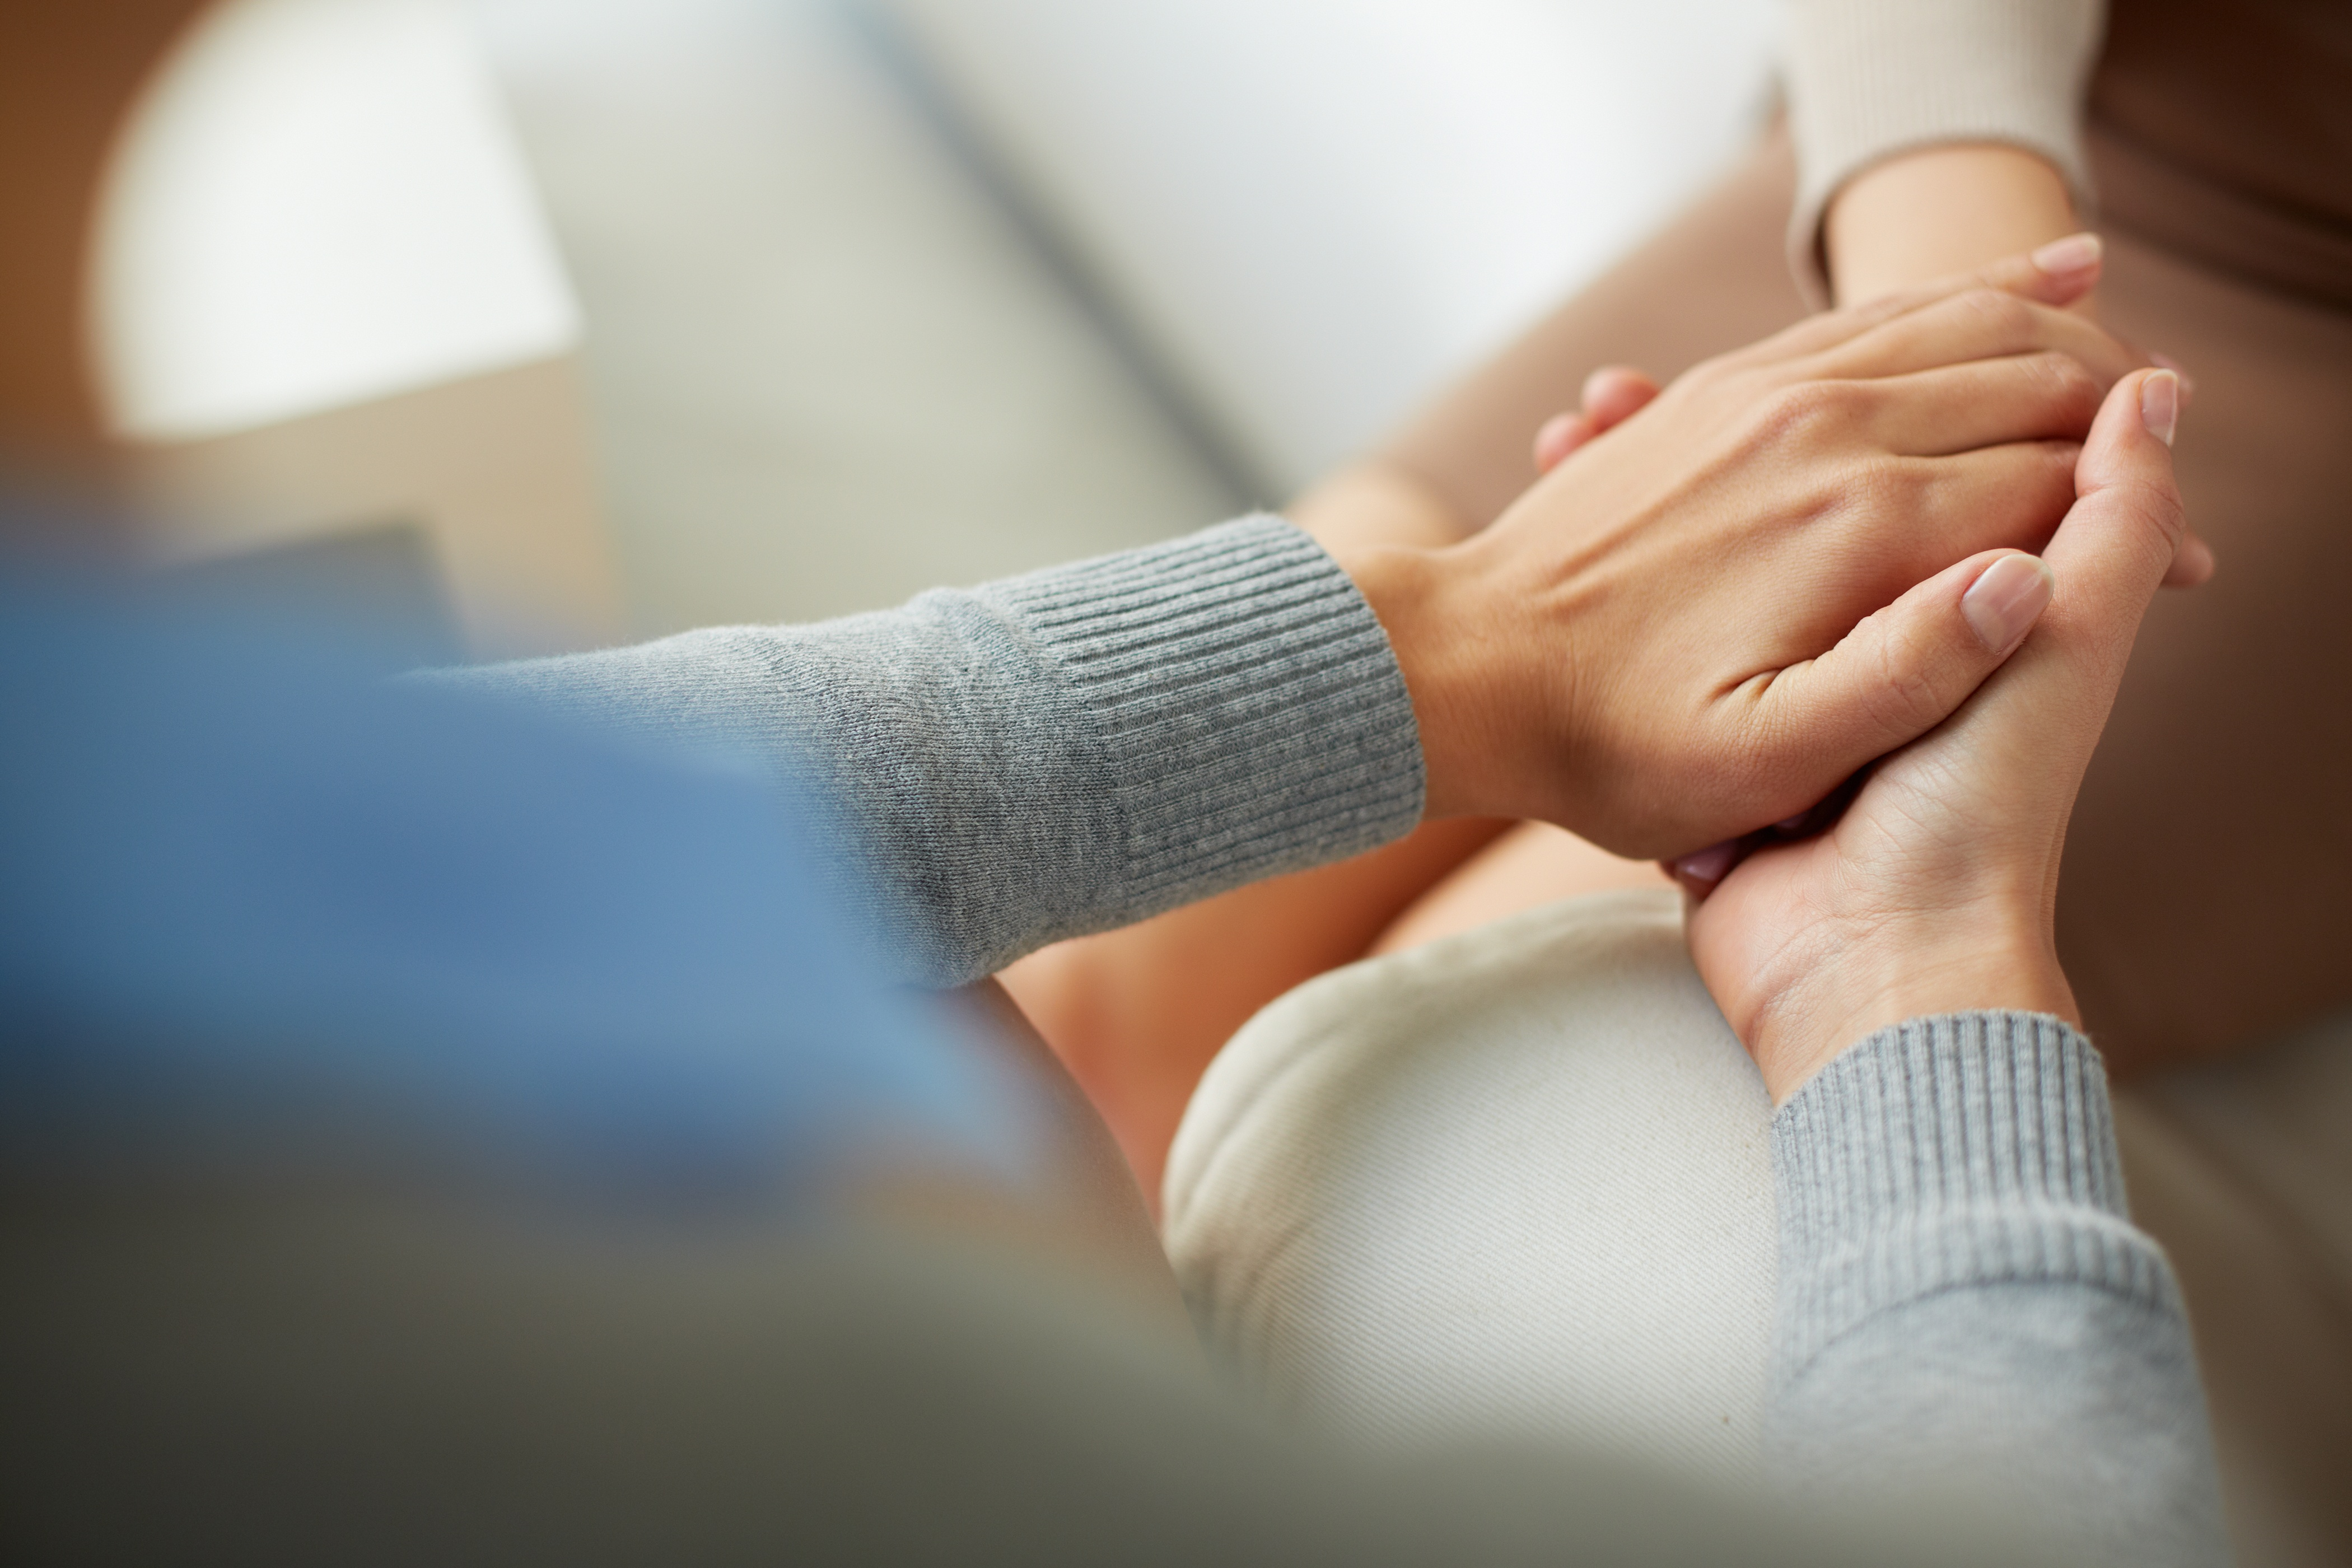 Signs that you need help with mental health concerns